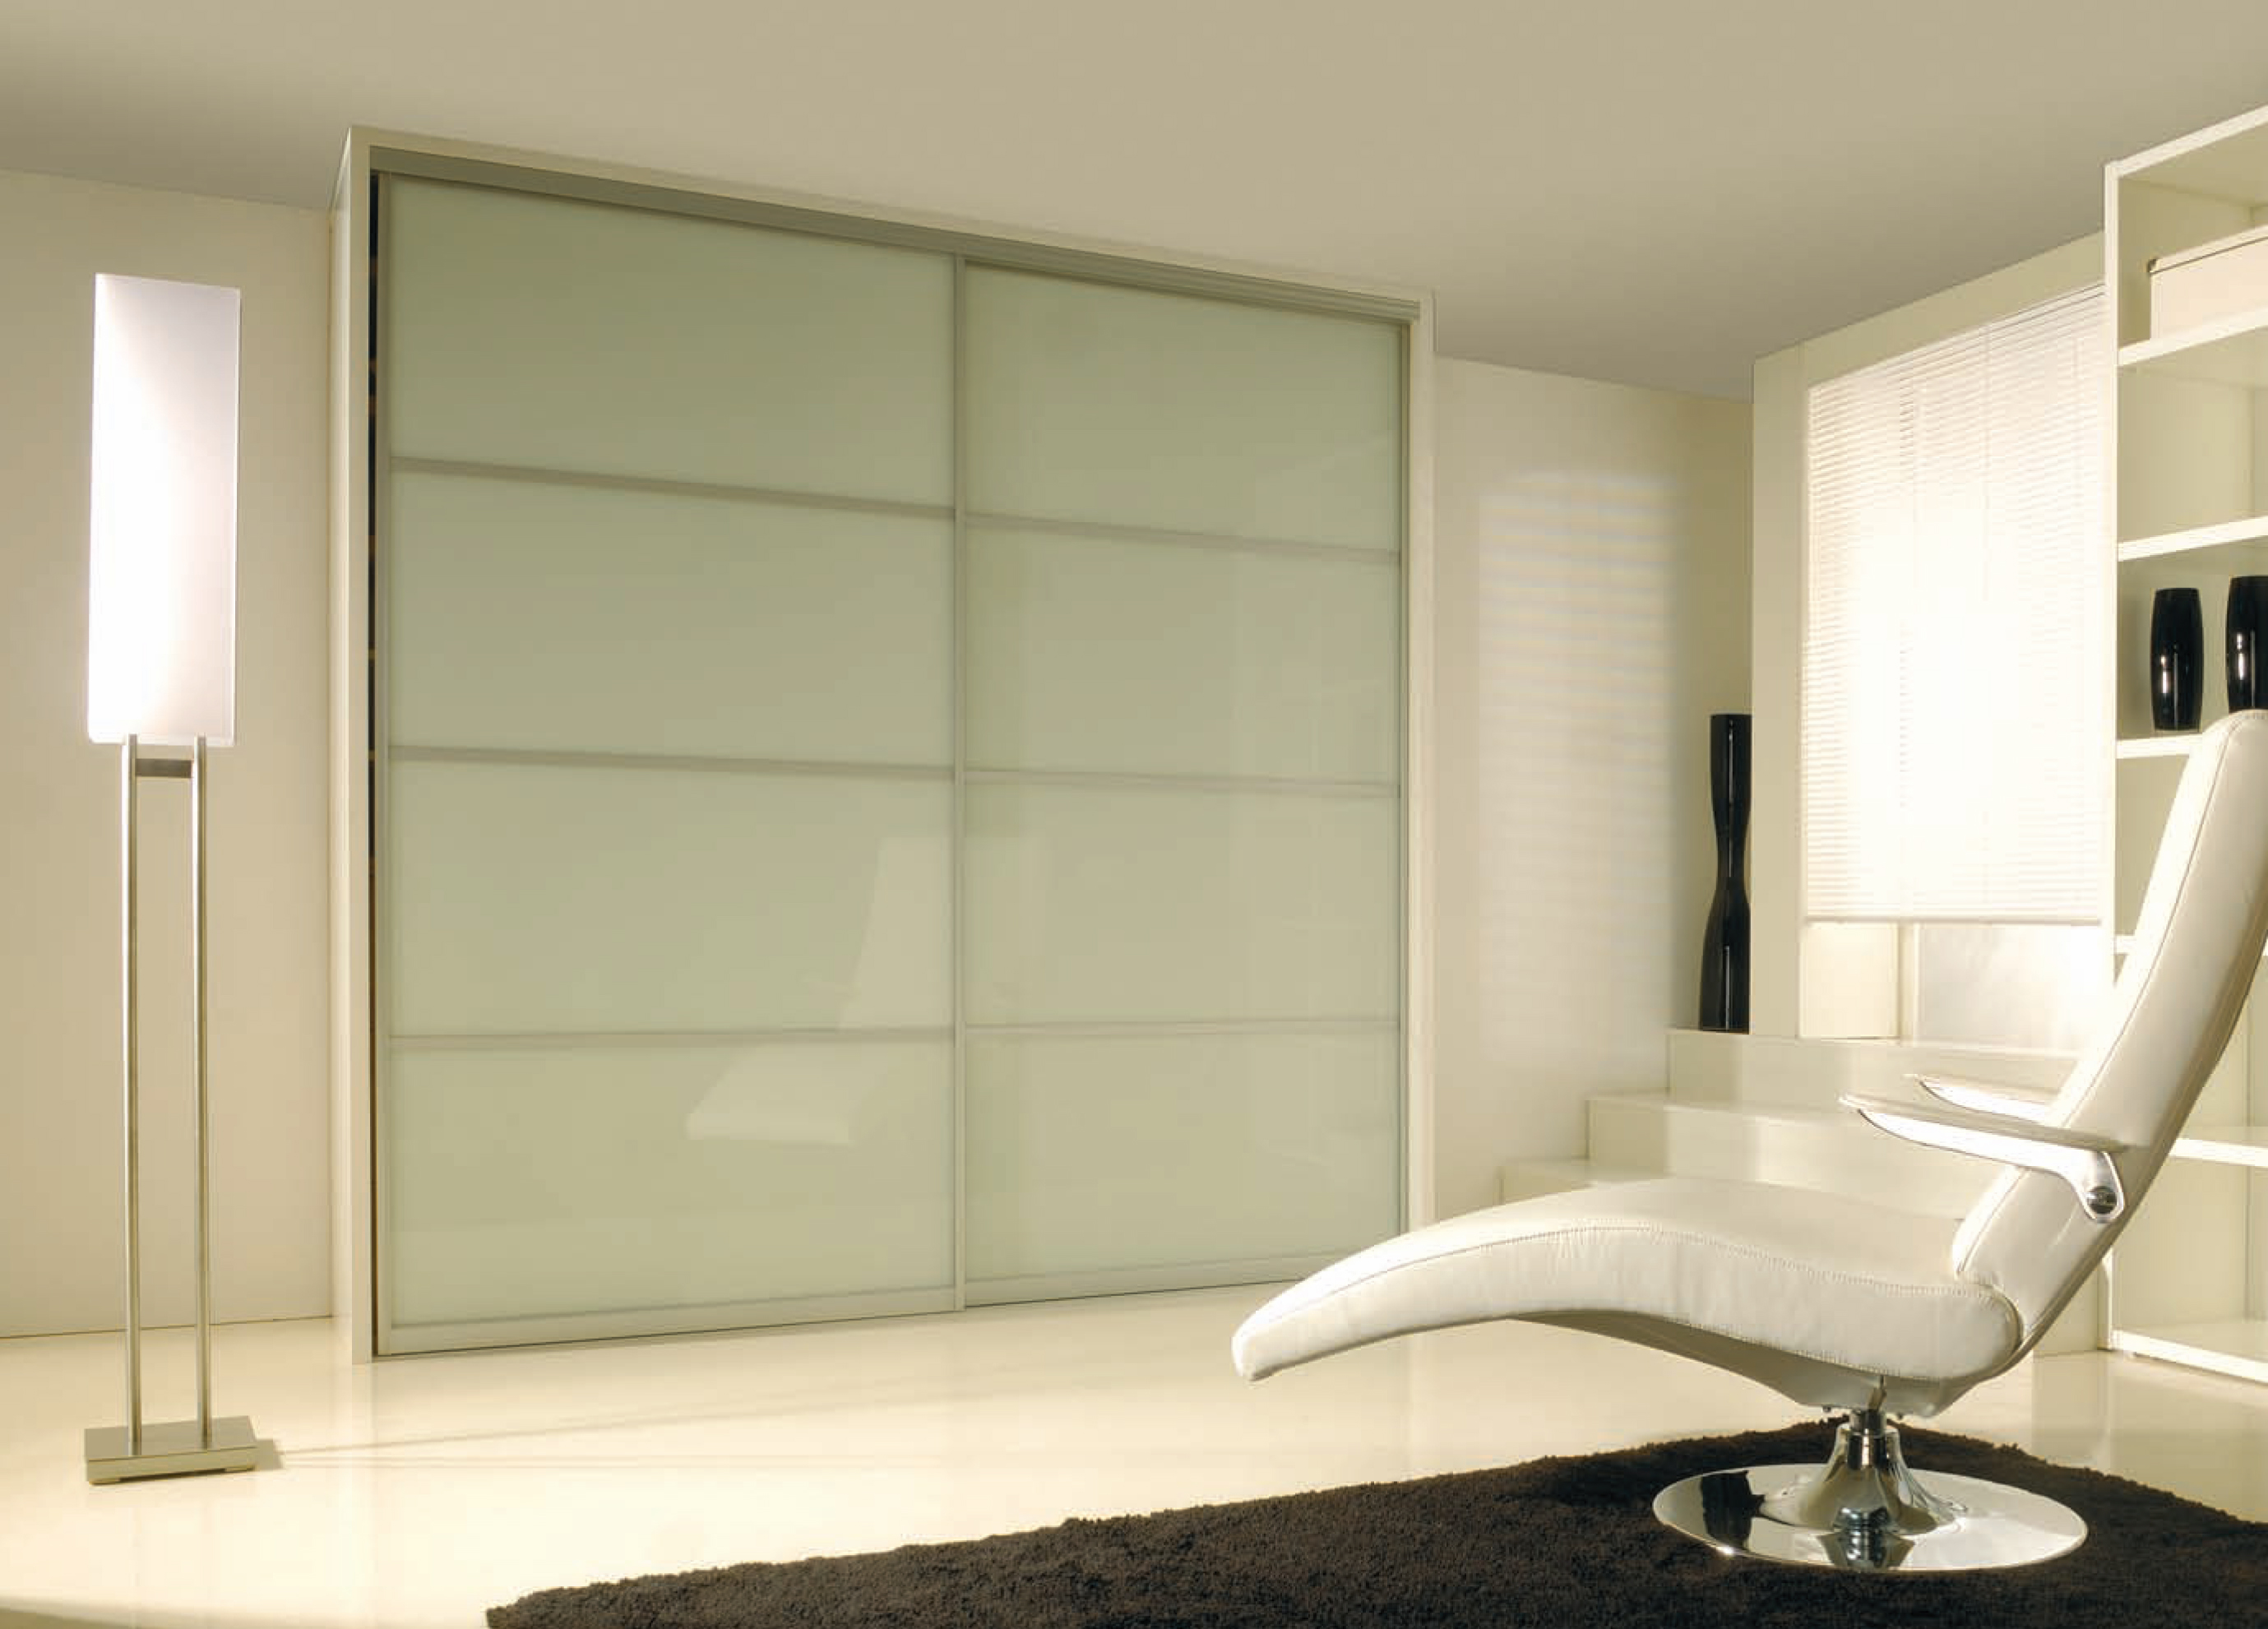 Glass Shower Amp Closet Doors Fort Lauderdale South Florida